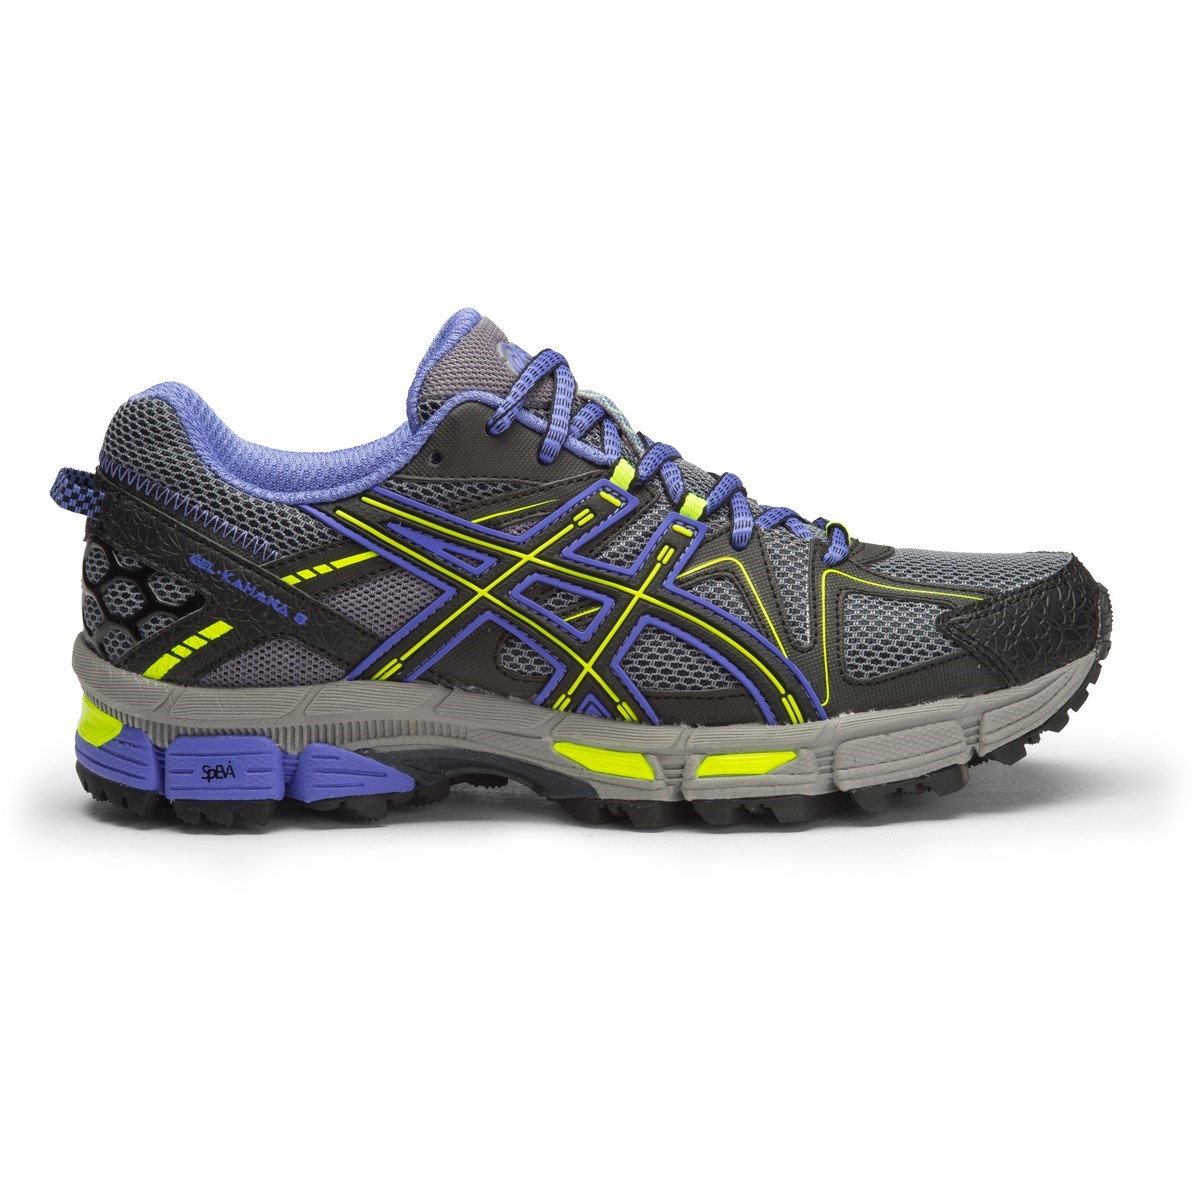 3331a398763e Asics Gel Kahana 8 - Womens Trail Running Shoes - Aluminium Black Flash  Yellow